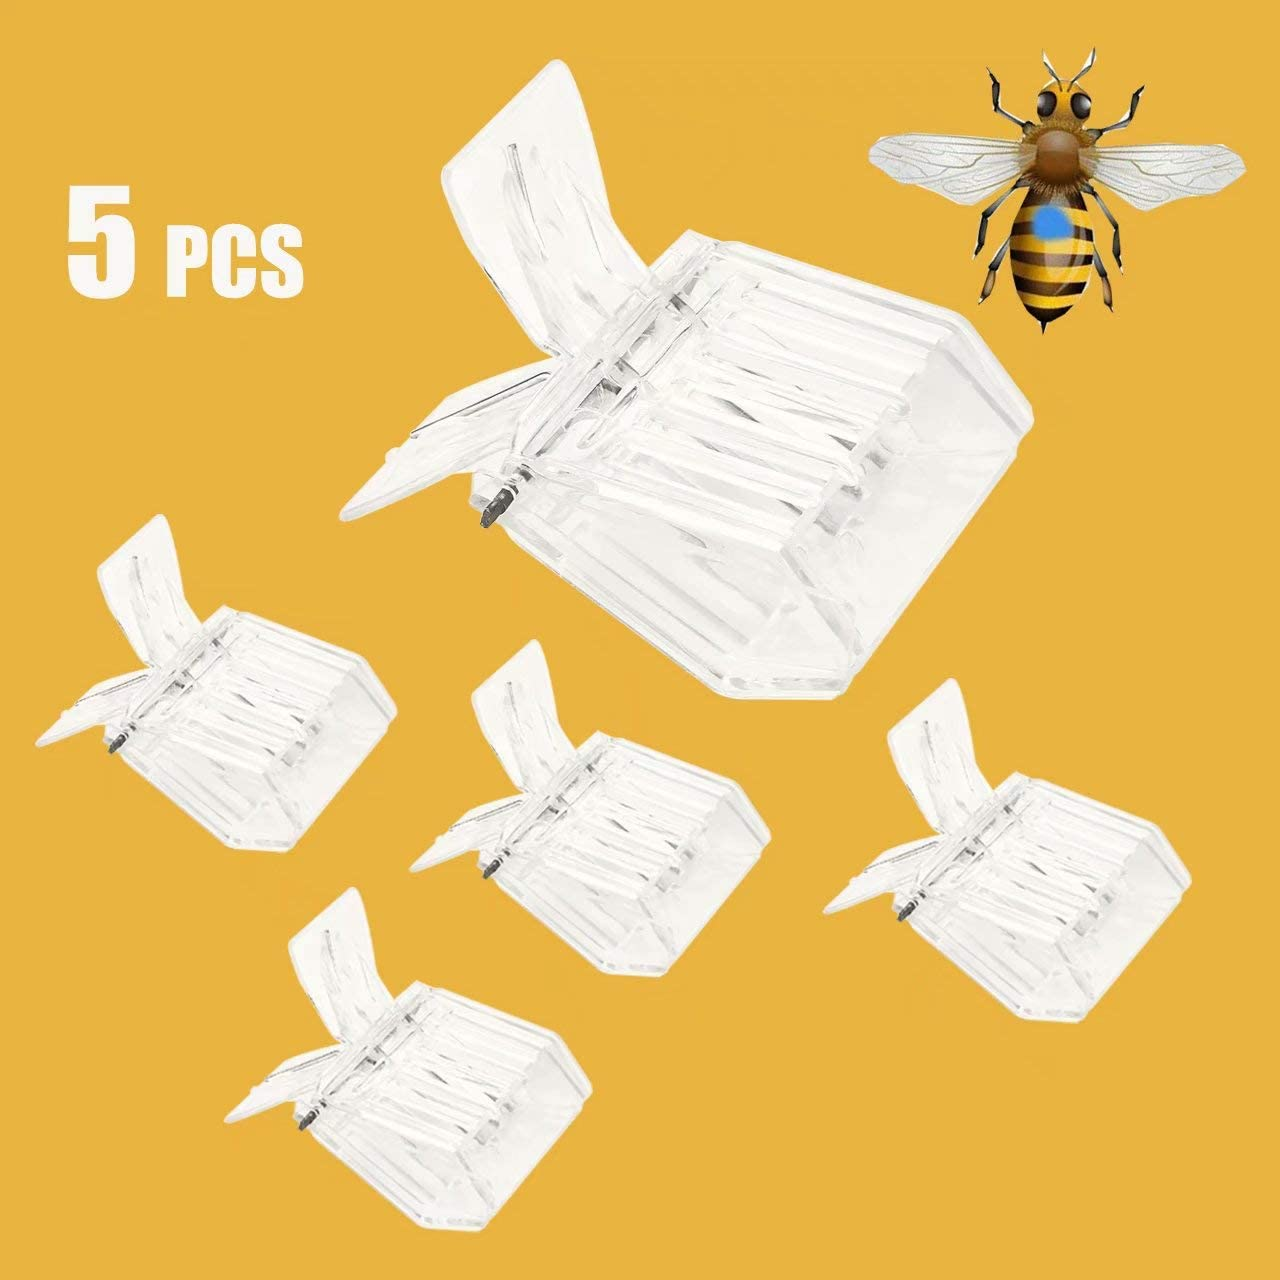 5 Pack Stainless Steel Clip Bee Cage Catcher Honey Beekeeping Queen Cage Tools